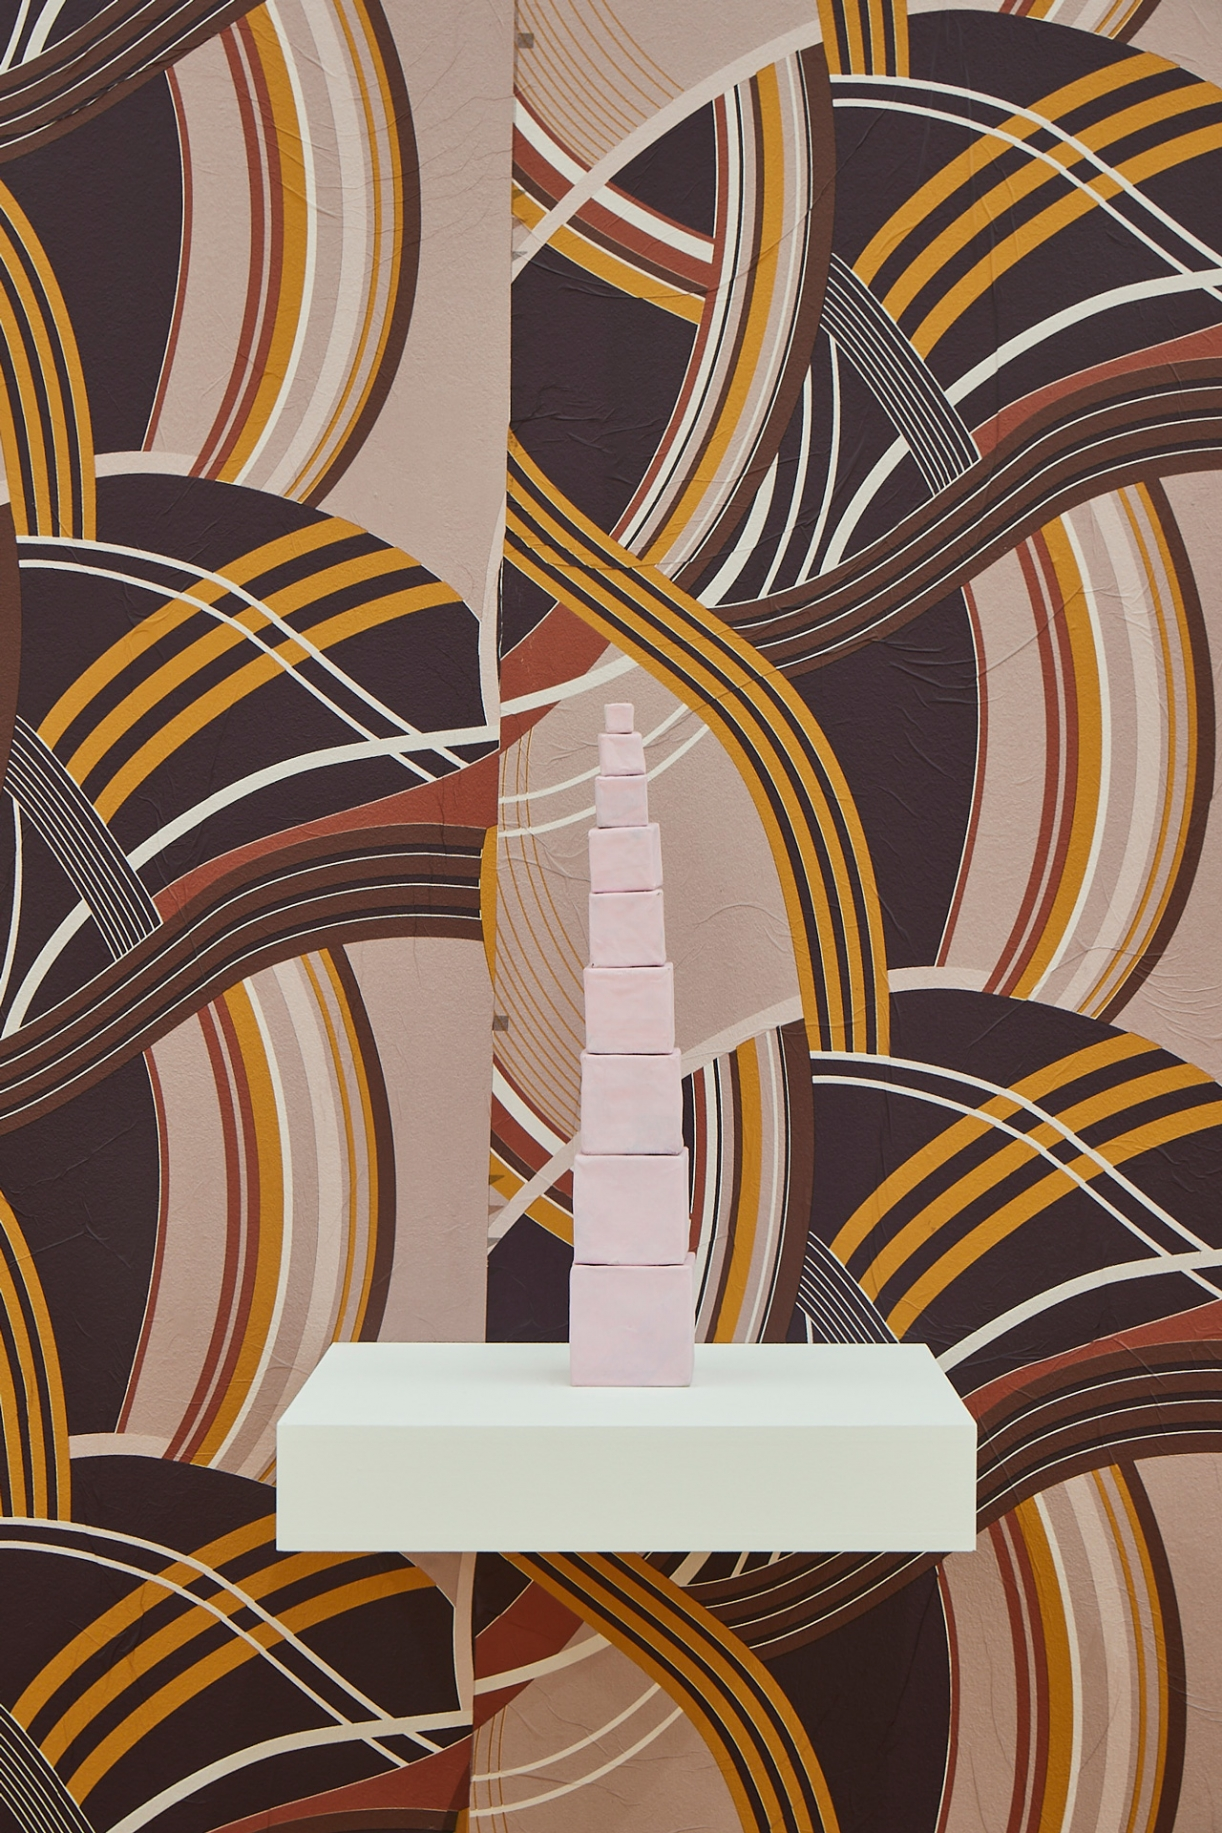 Pink Tower (Sensorial education toy), 2020, Papier mâché, 9 blocks, dimensions variable